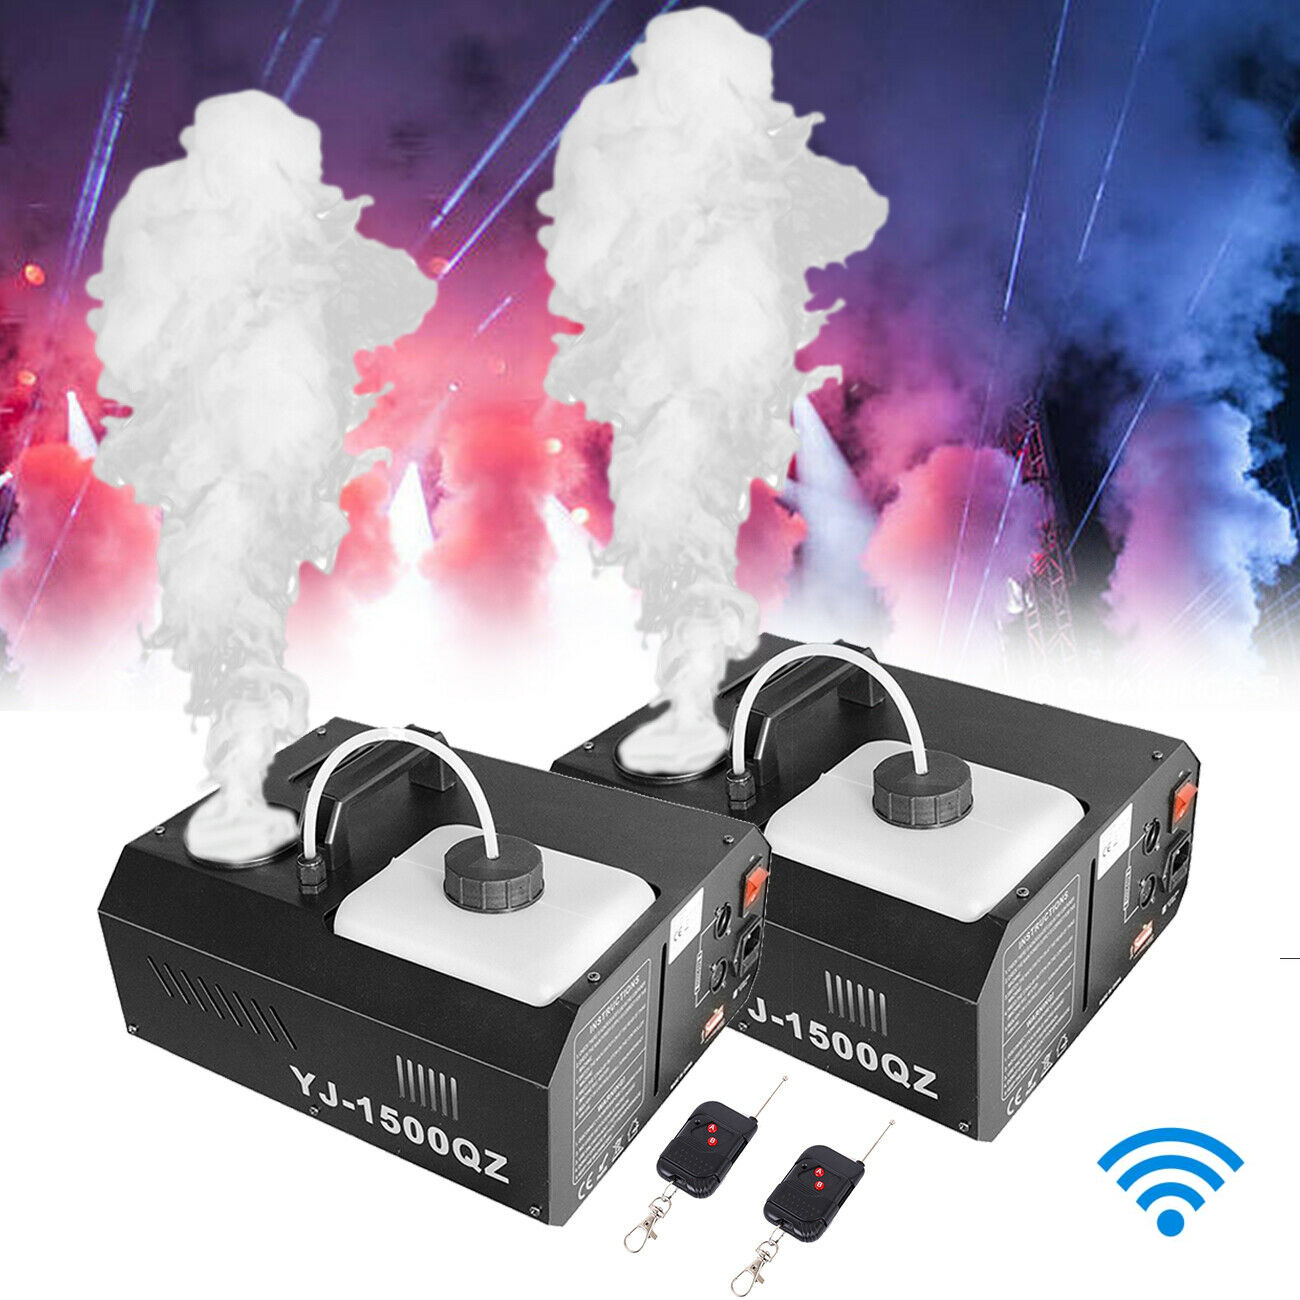 honhill-fog-smoke-machine-dmx512-1500w-wireless-fogger-machine-with-remote-control-upspray-fogger-stage-disco-fogger